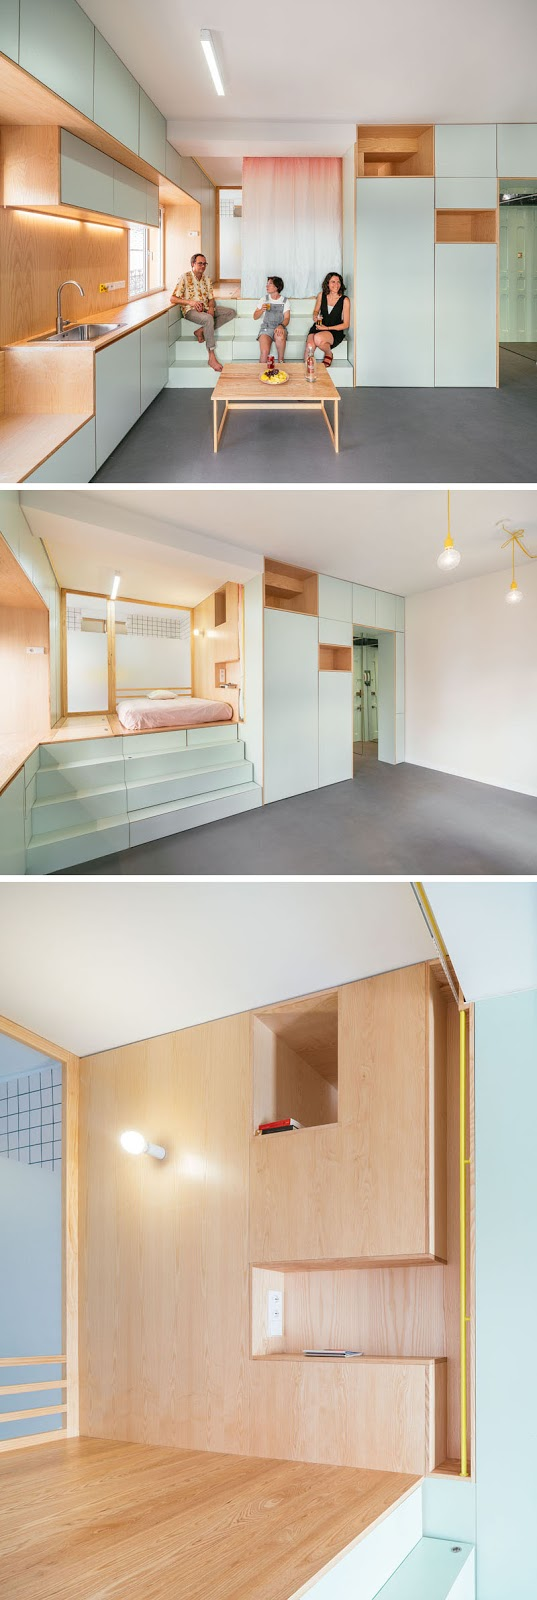 small-apartment-raised-bedroom-090318-1244-05 The Design Of This Renovation Small Apartment Includes Many Creative Storage Solution Ideas Interior